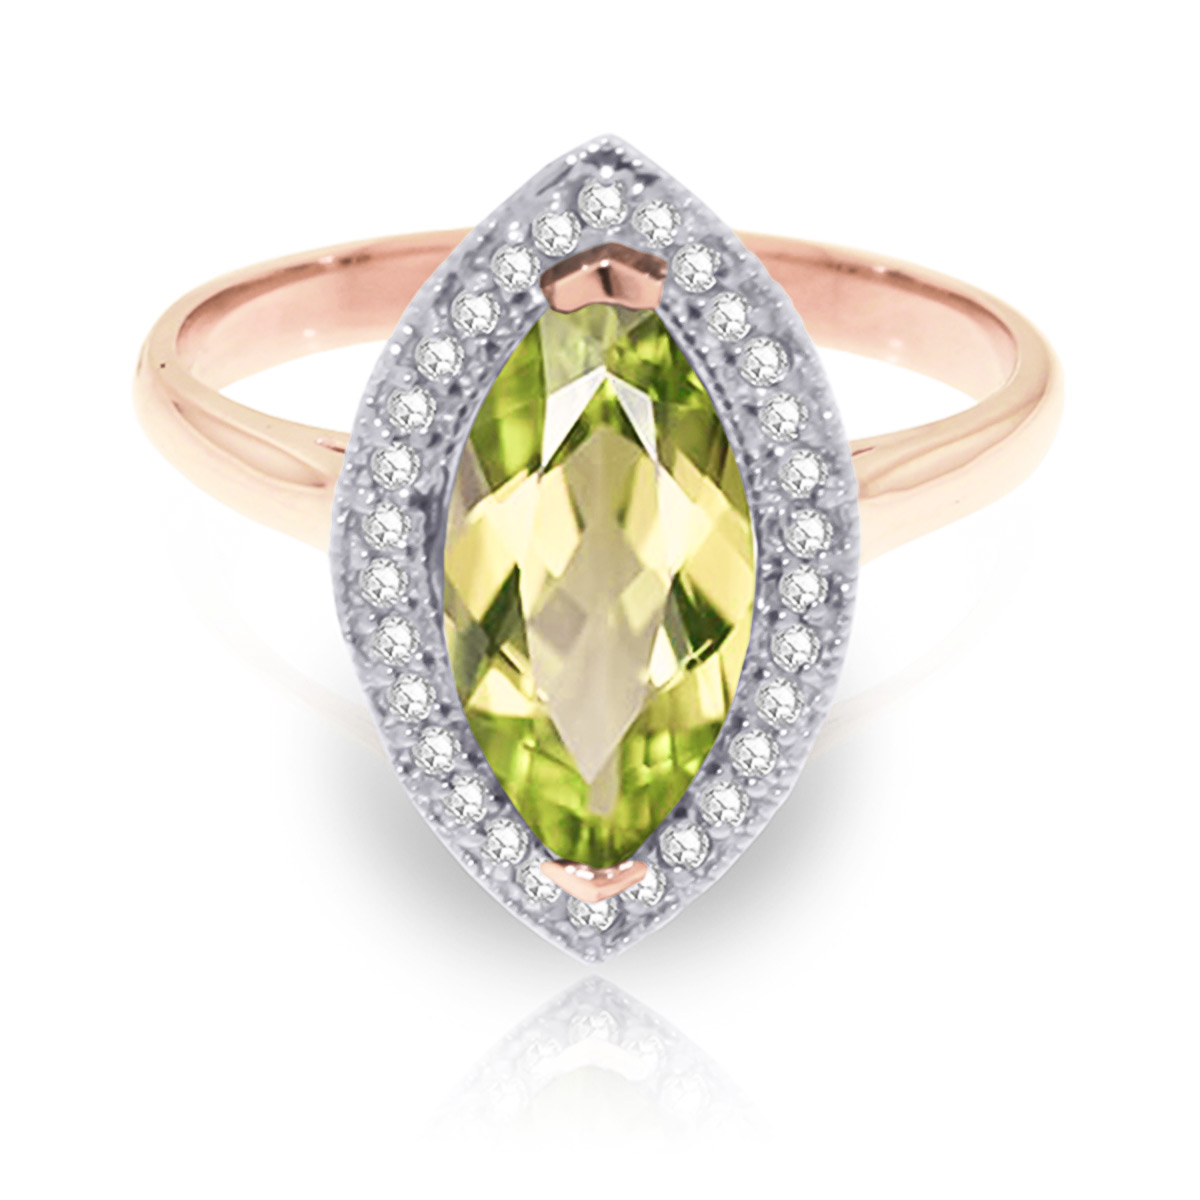 Peridot and Diamond Halo Ring 2.0ct in 9ct Rose Gold